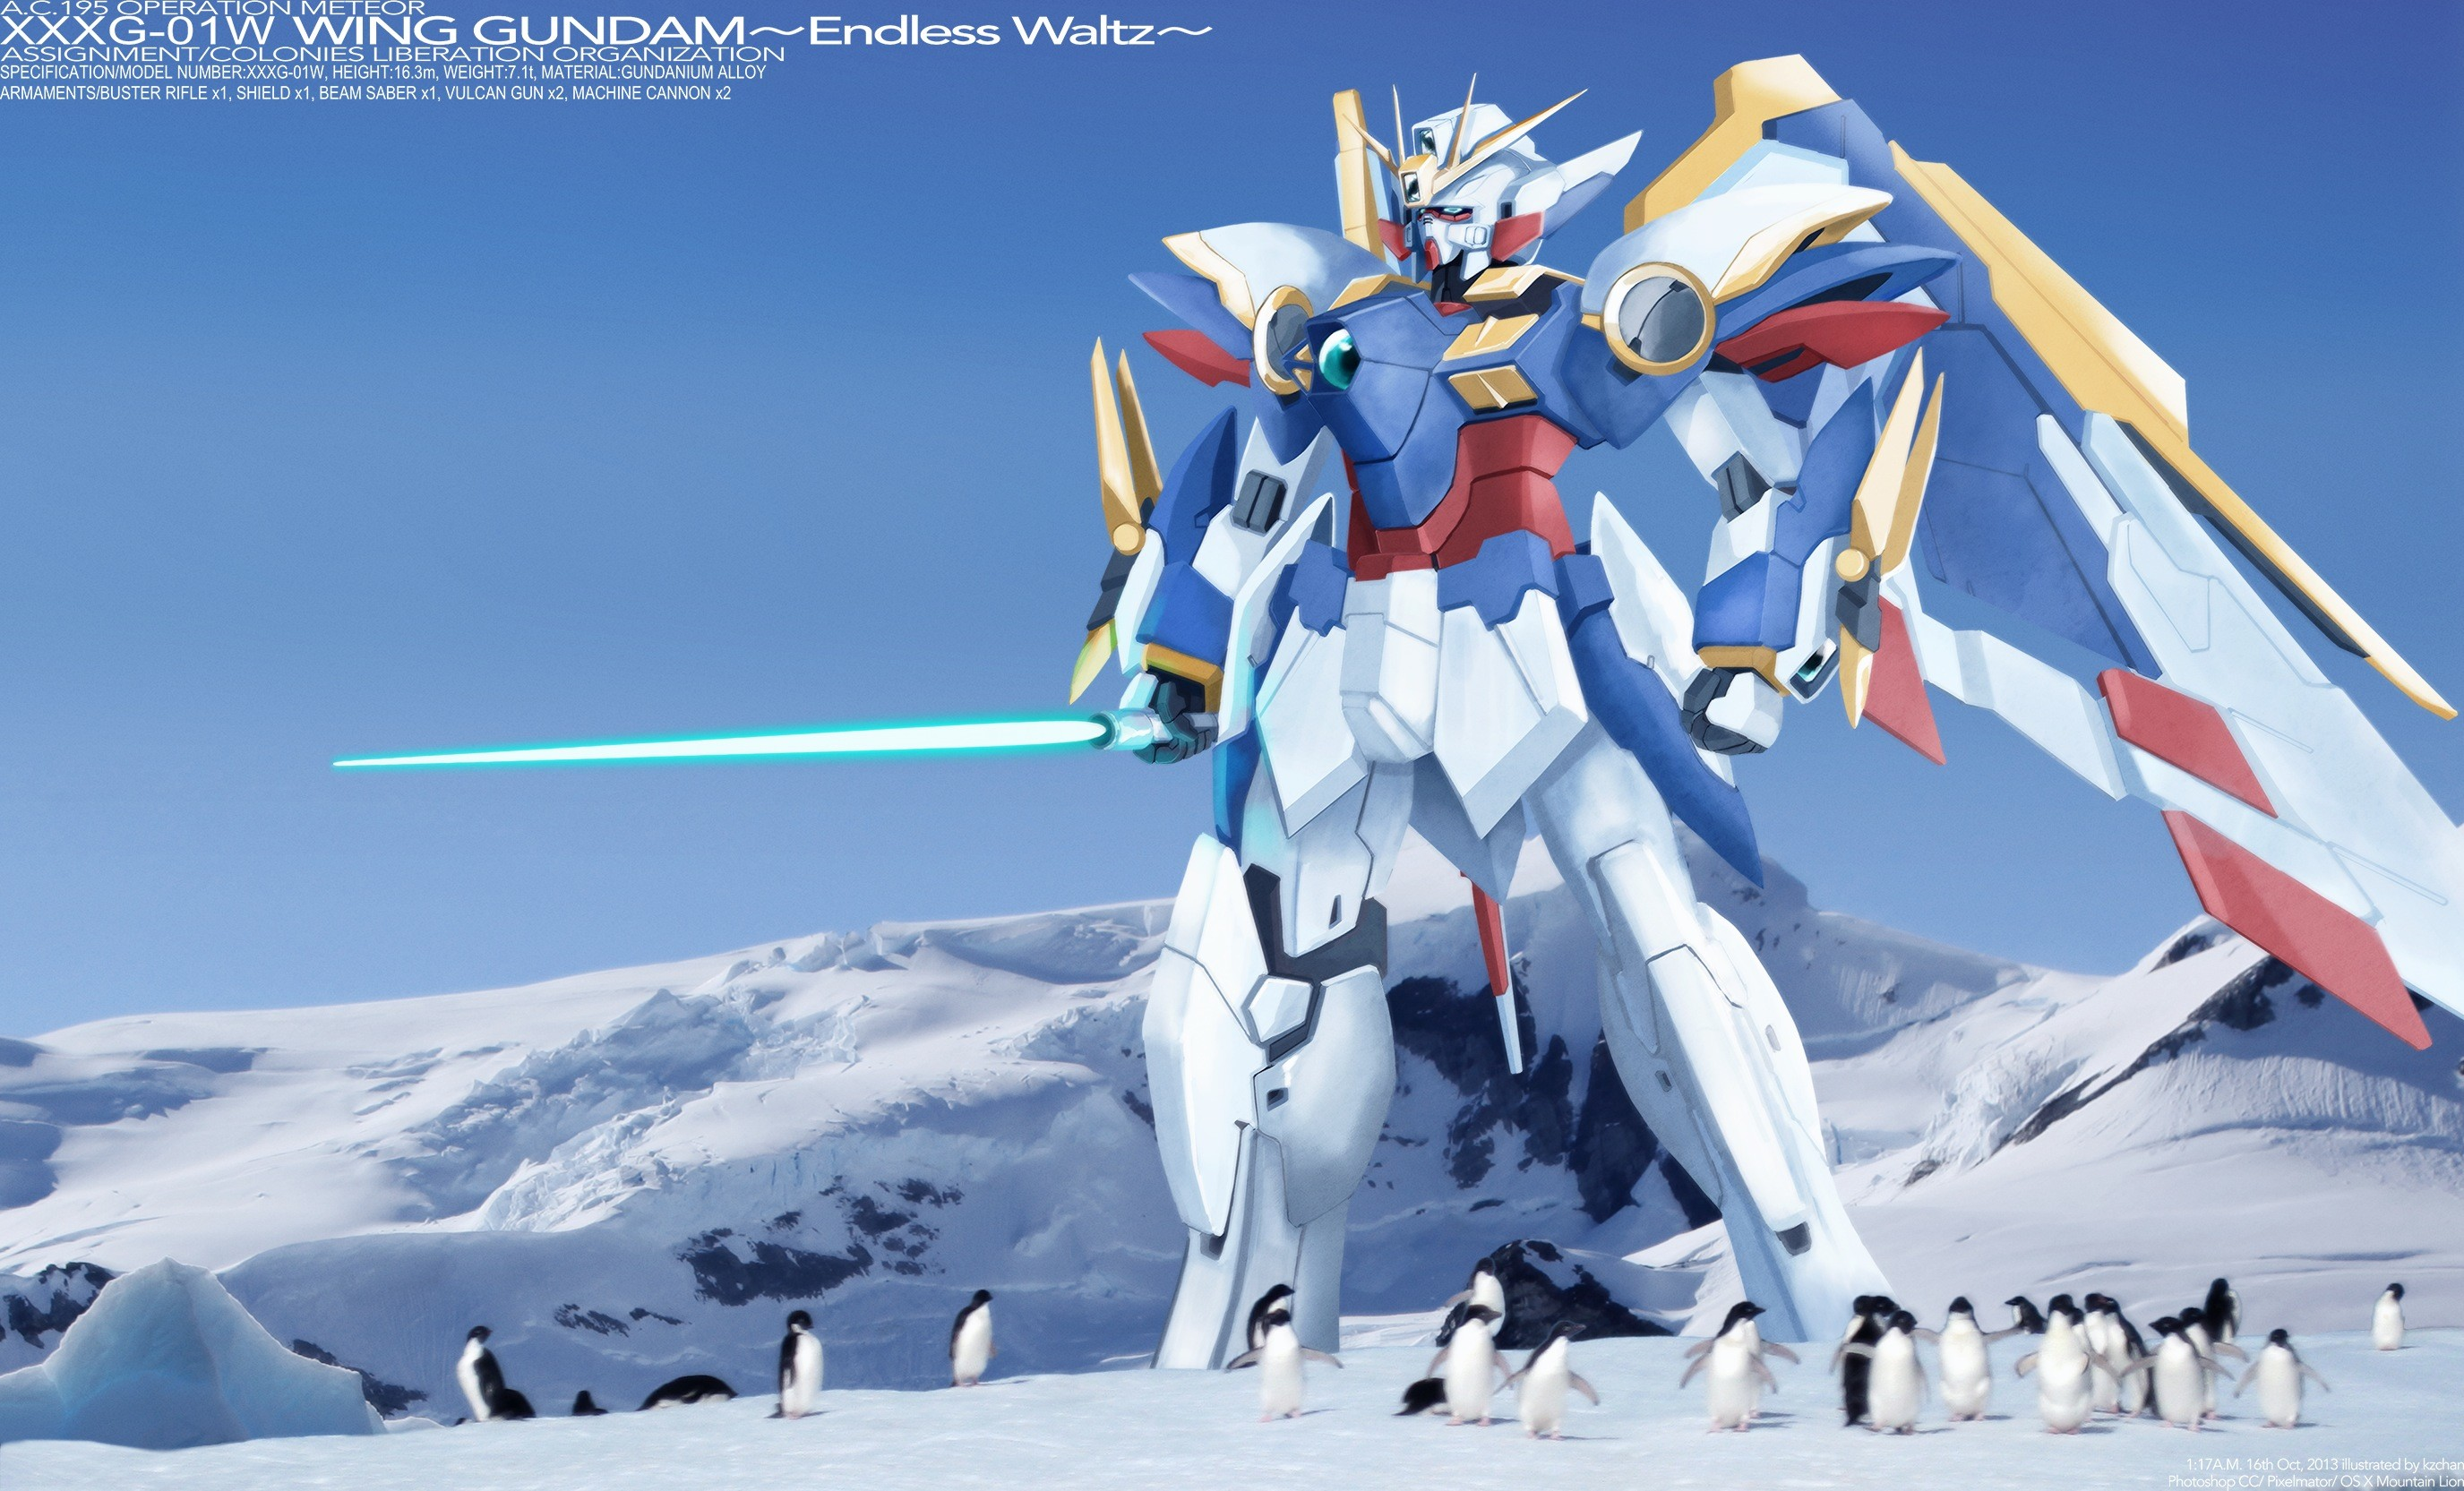 Wallpaper of Wing Gundam hanging out with some Penguins